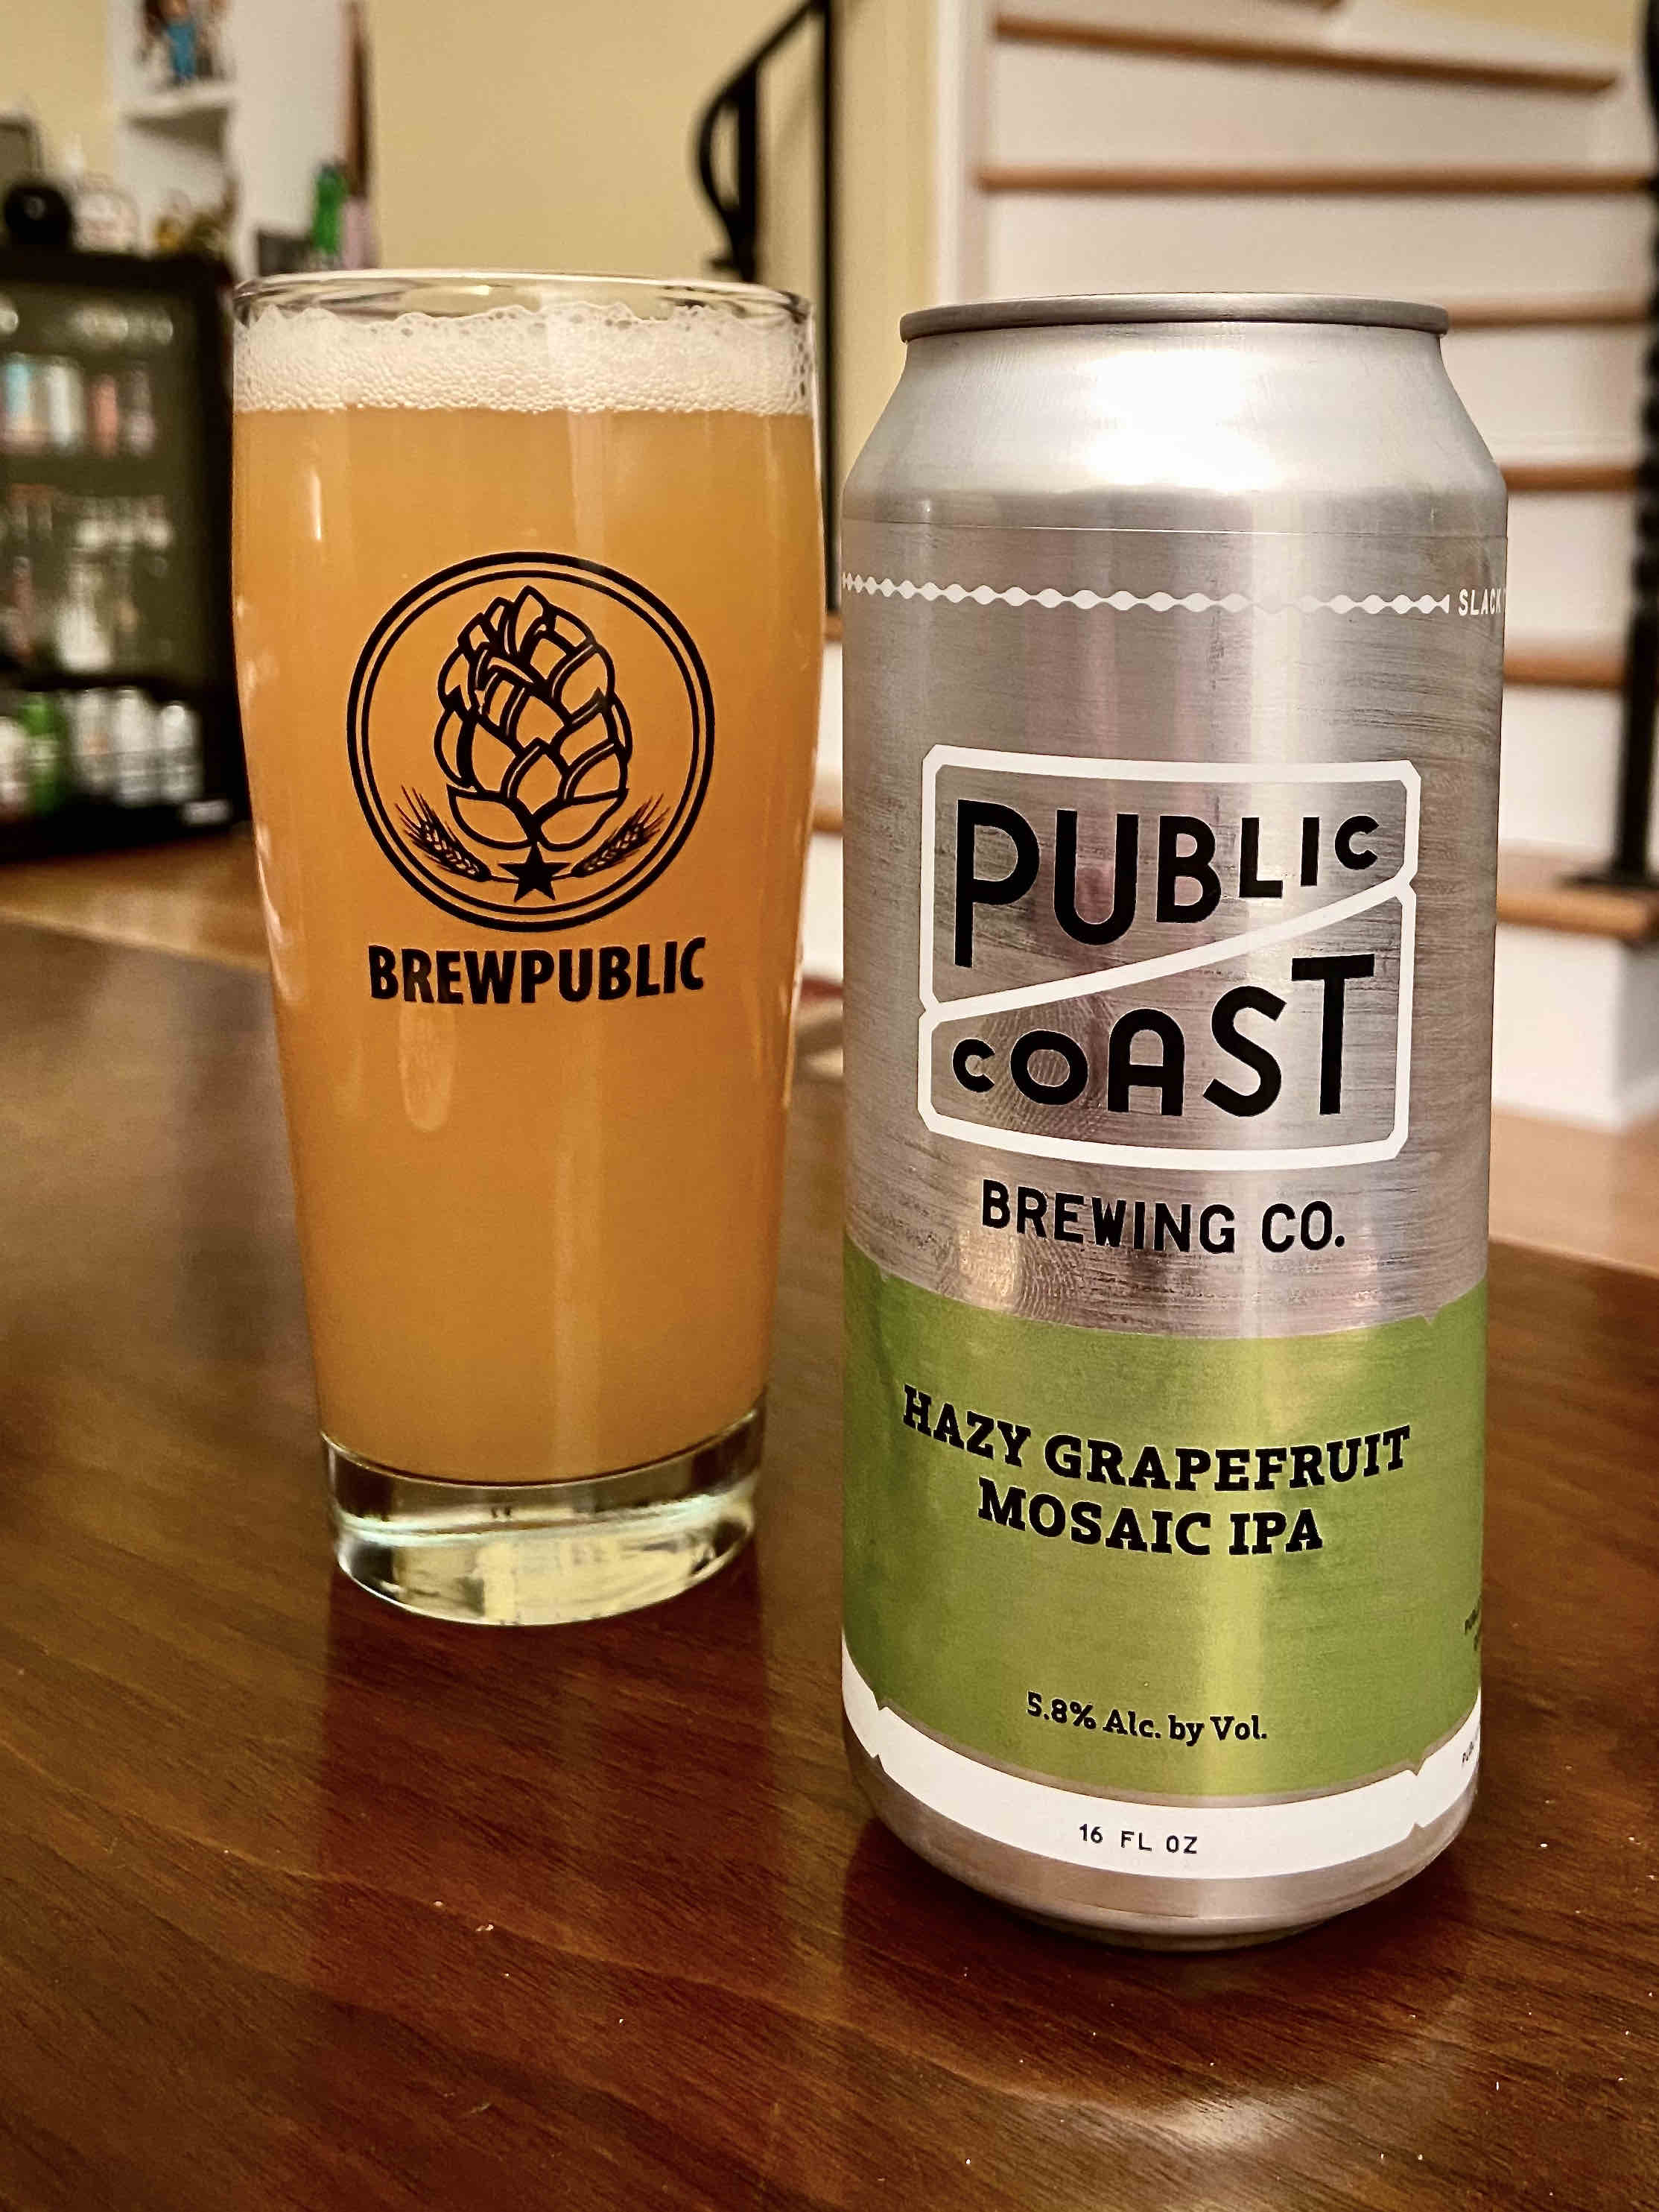 Public Coast Brewing Co. releases Hazy Grapefruit Mosaic IPA in 16oz cans.